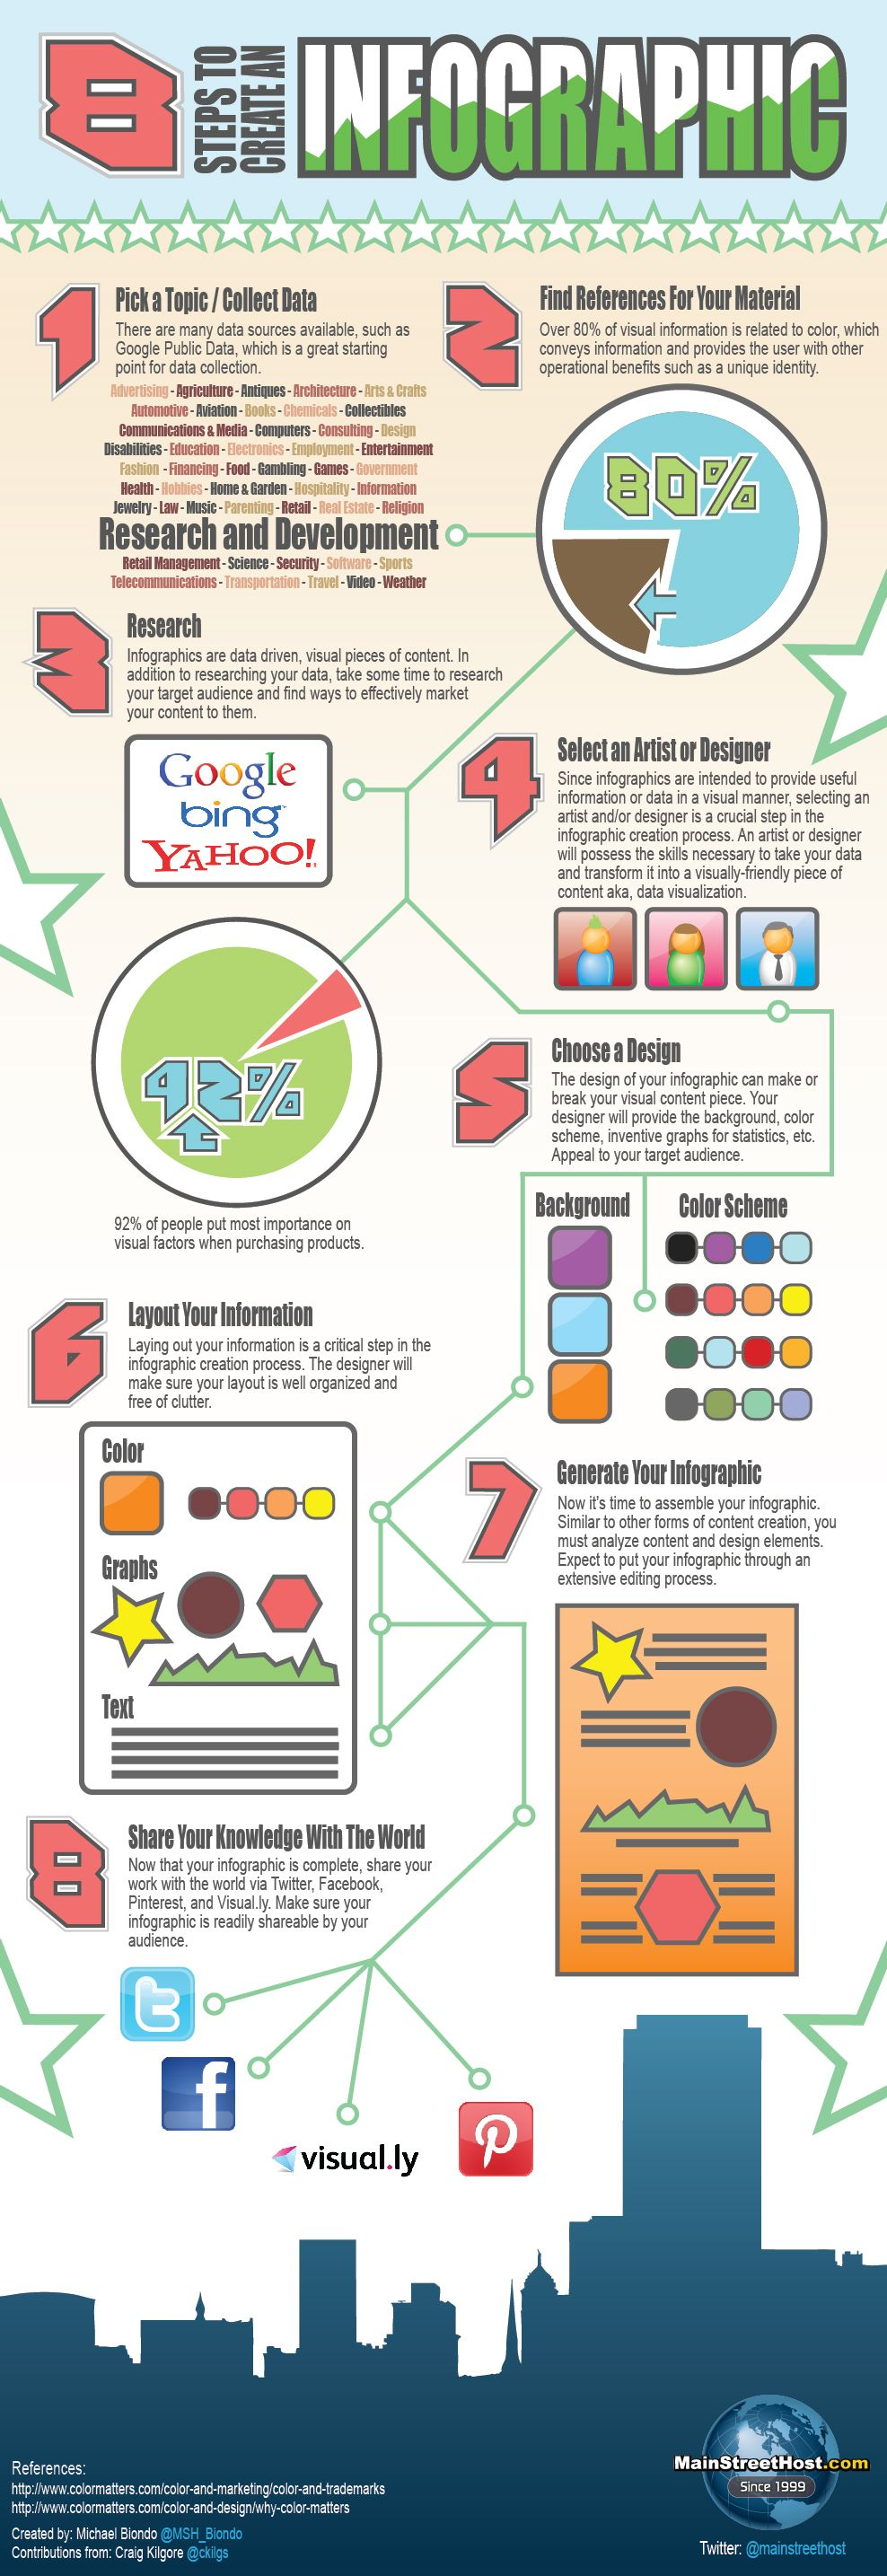 How to Create an Infographic